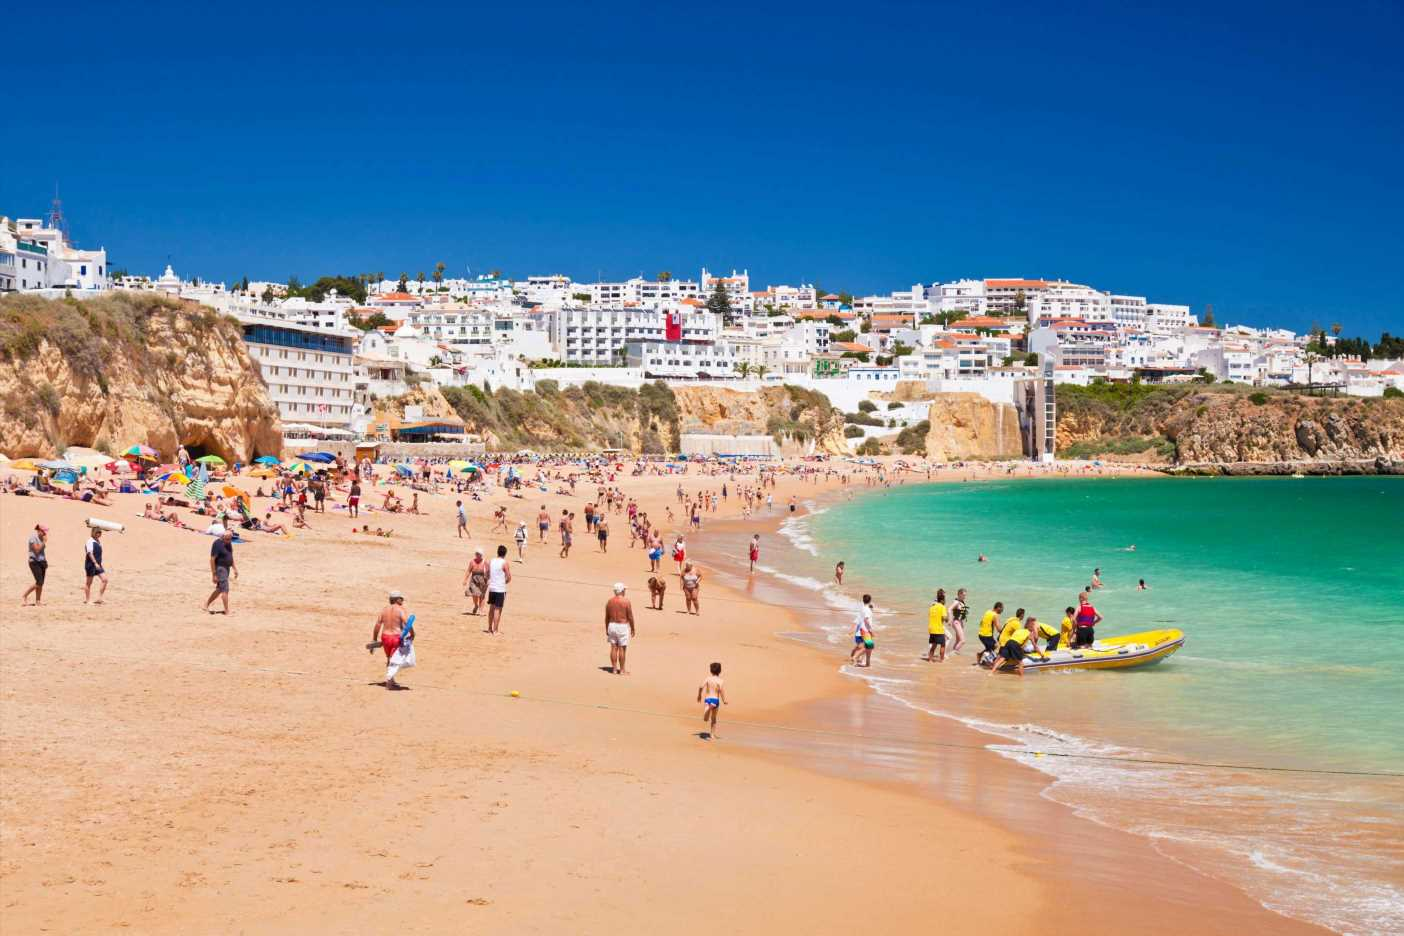 Portugal holiday warning as all kids 12 and over must be vaxxed or face quarantine